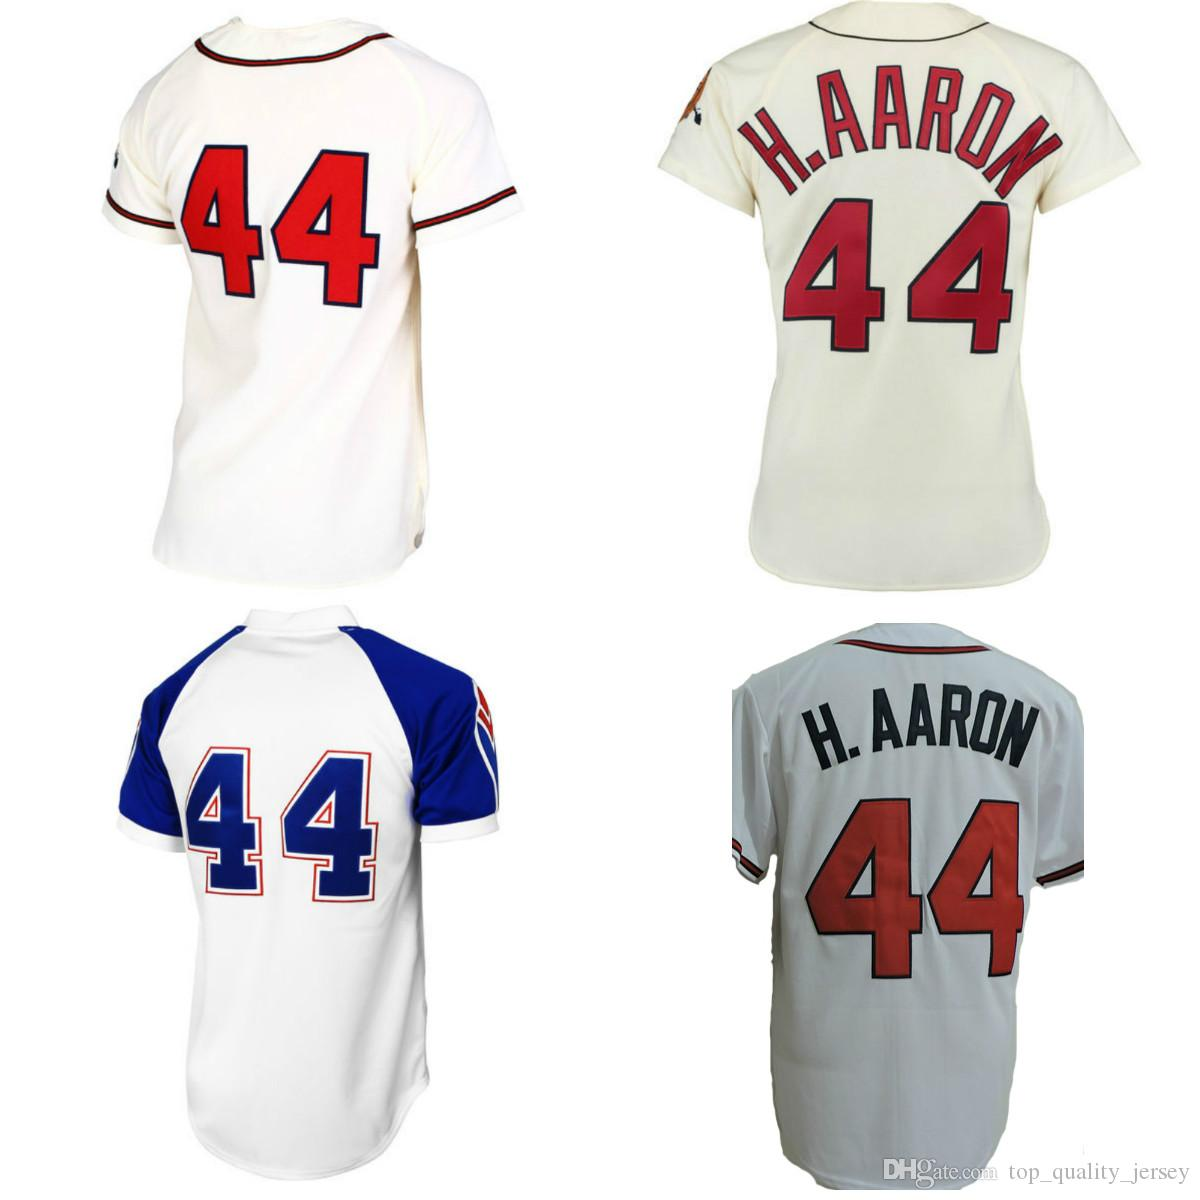 purchase cheap 55cc5 e4bda hank aaron jersey shirt- HIS LLC